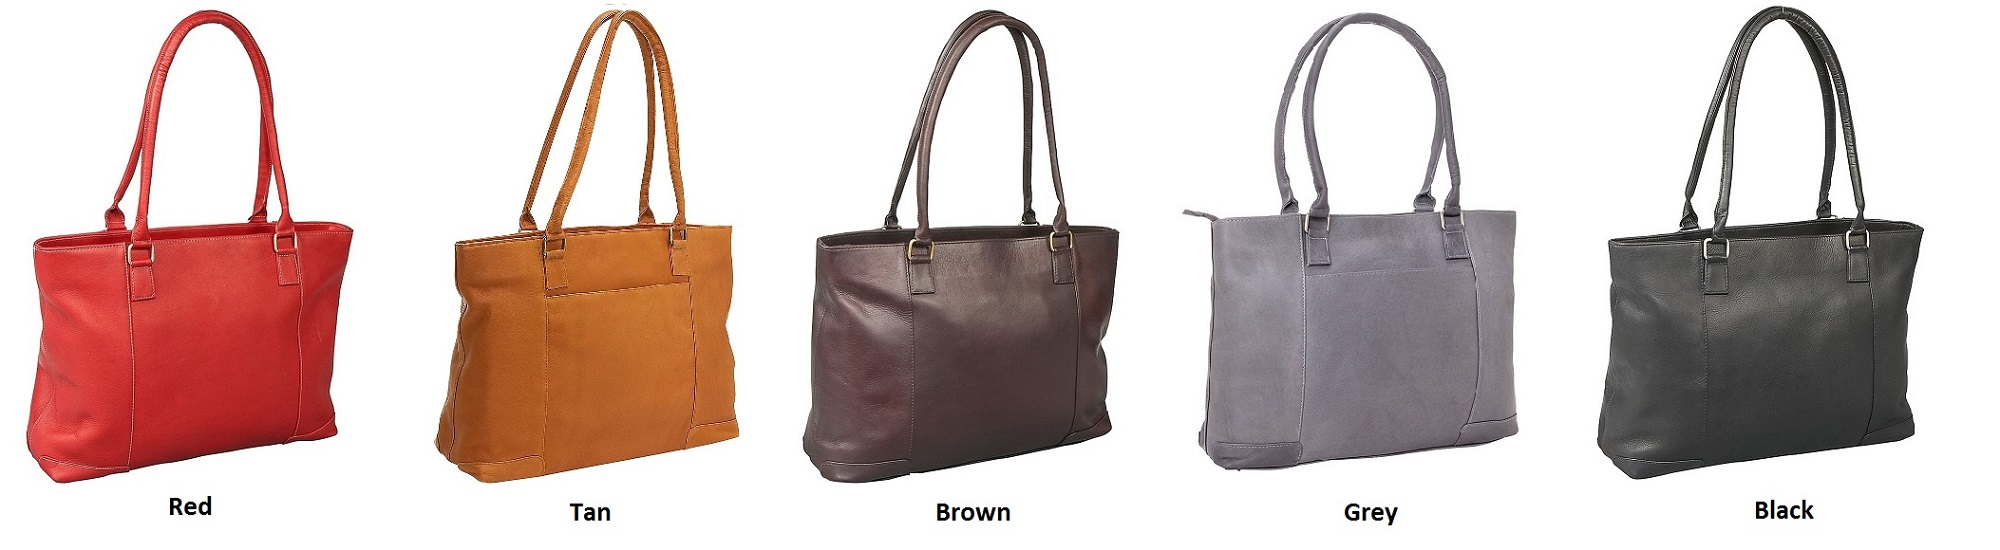 Leather Tote Color Options